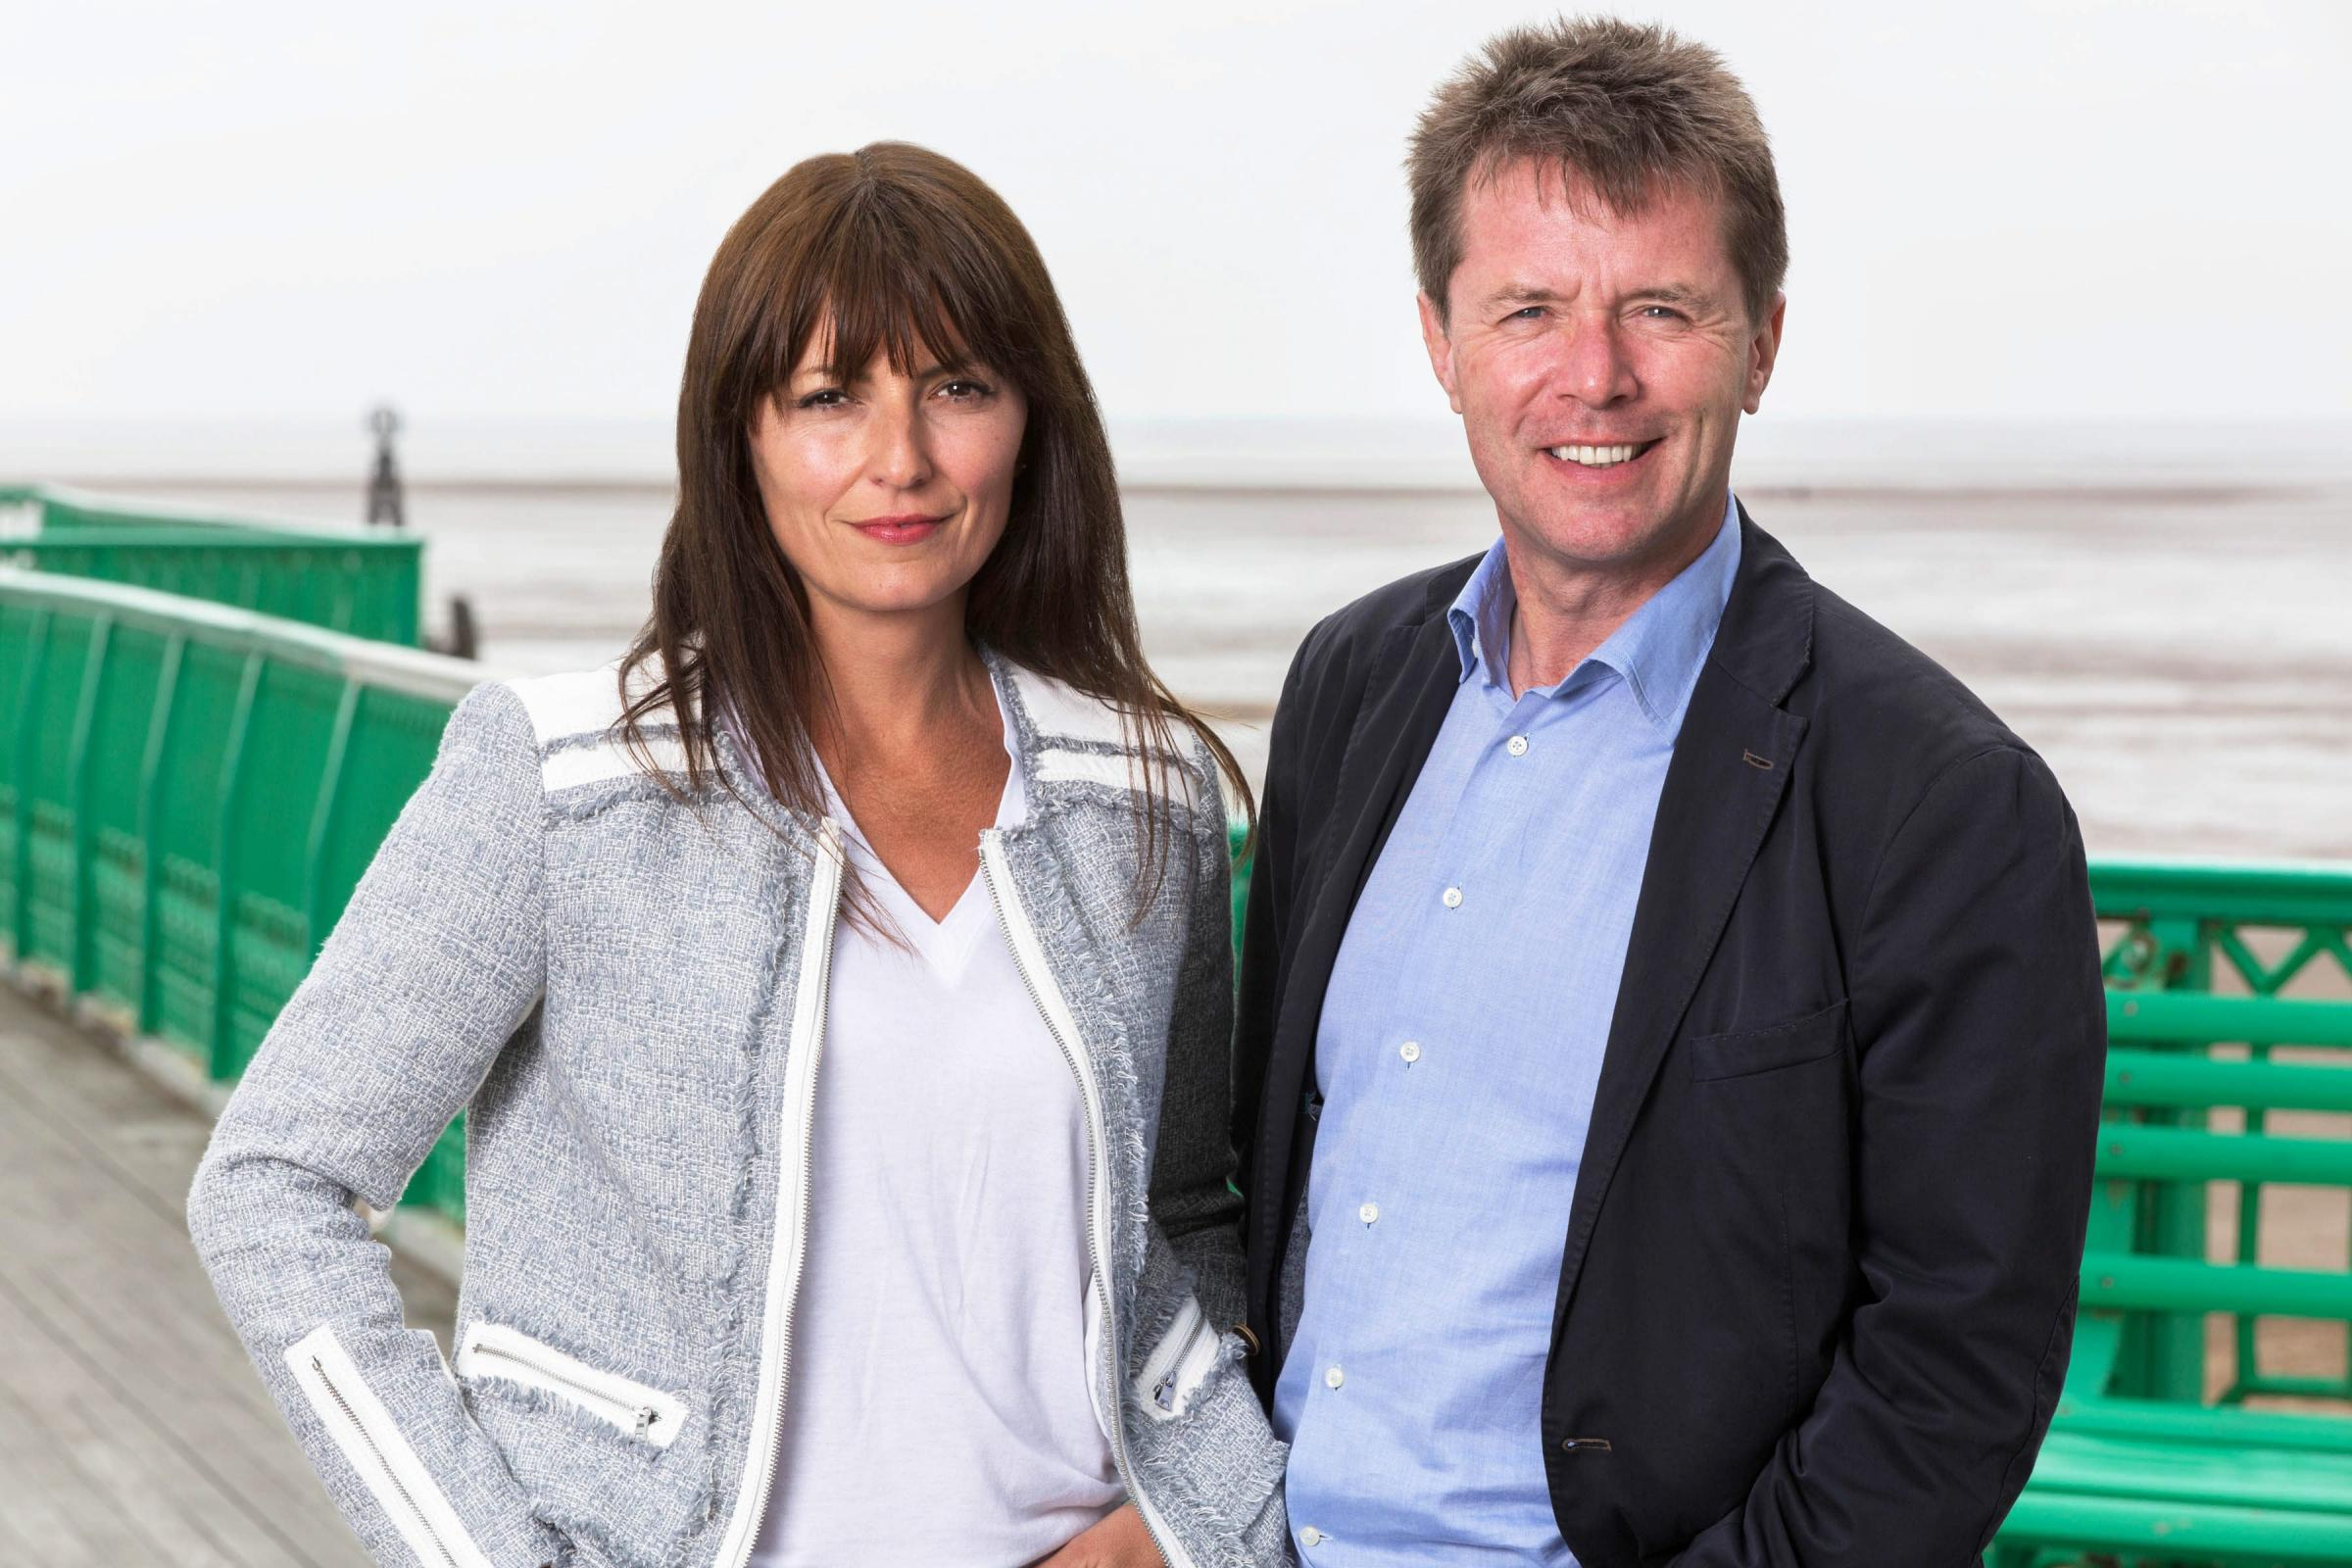 Davina McCall and Nicky Campbell